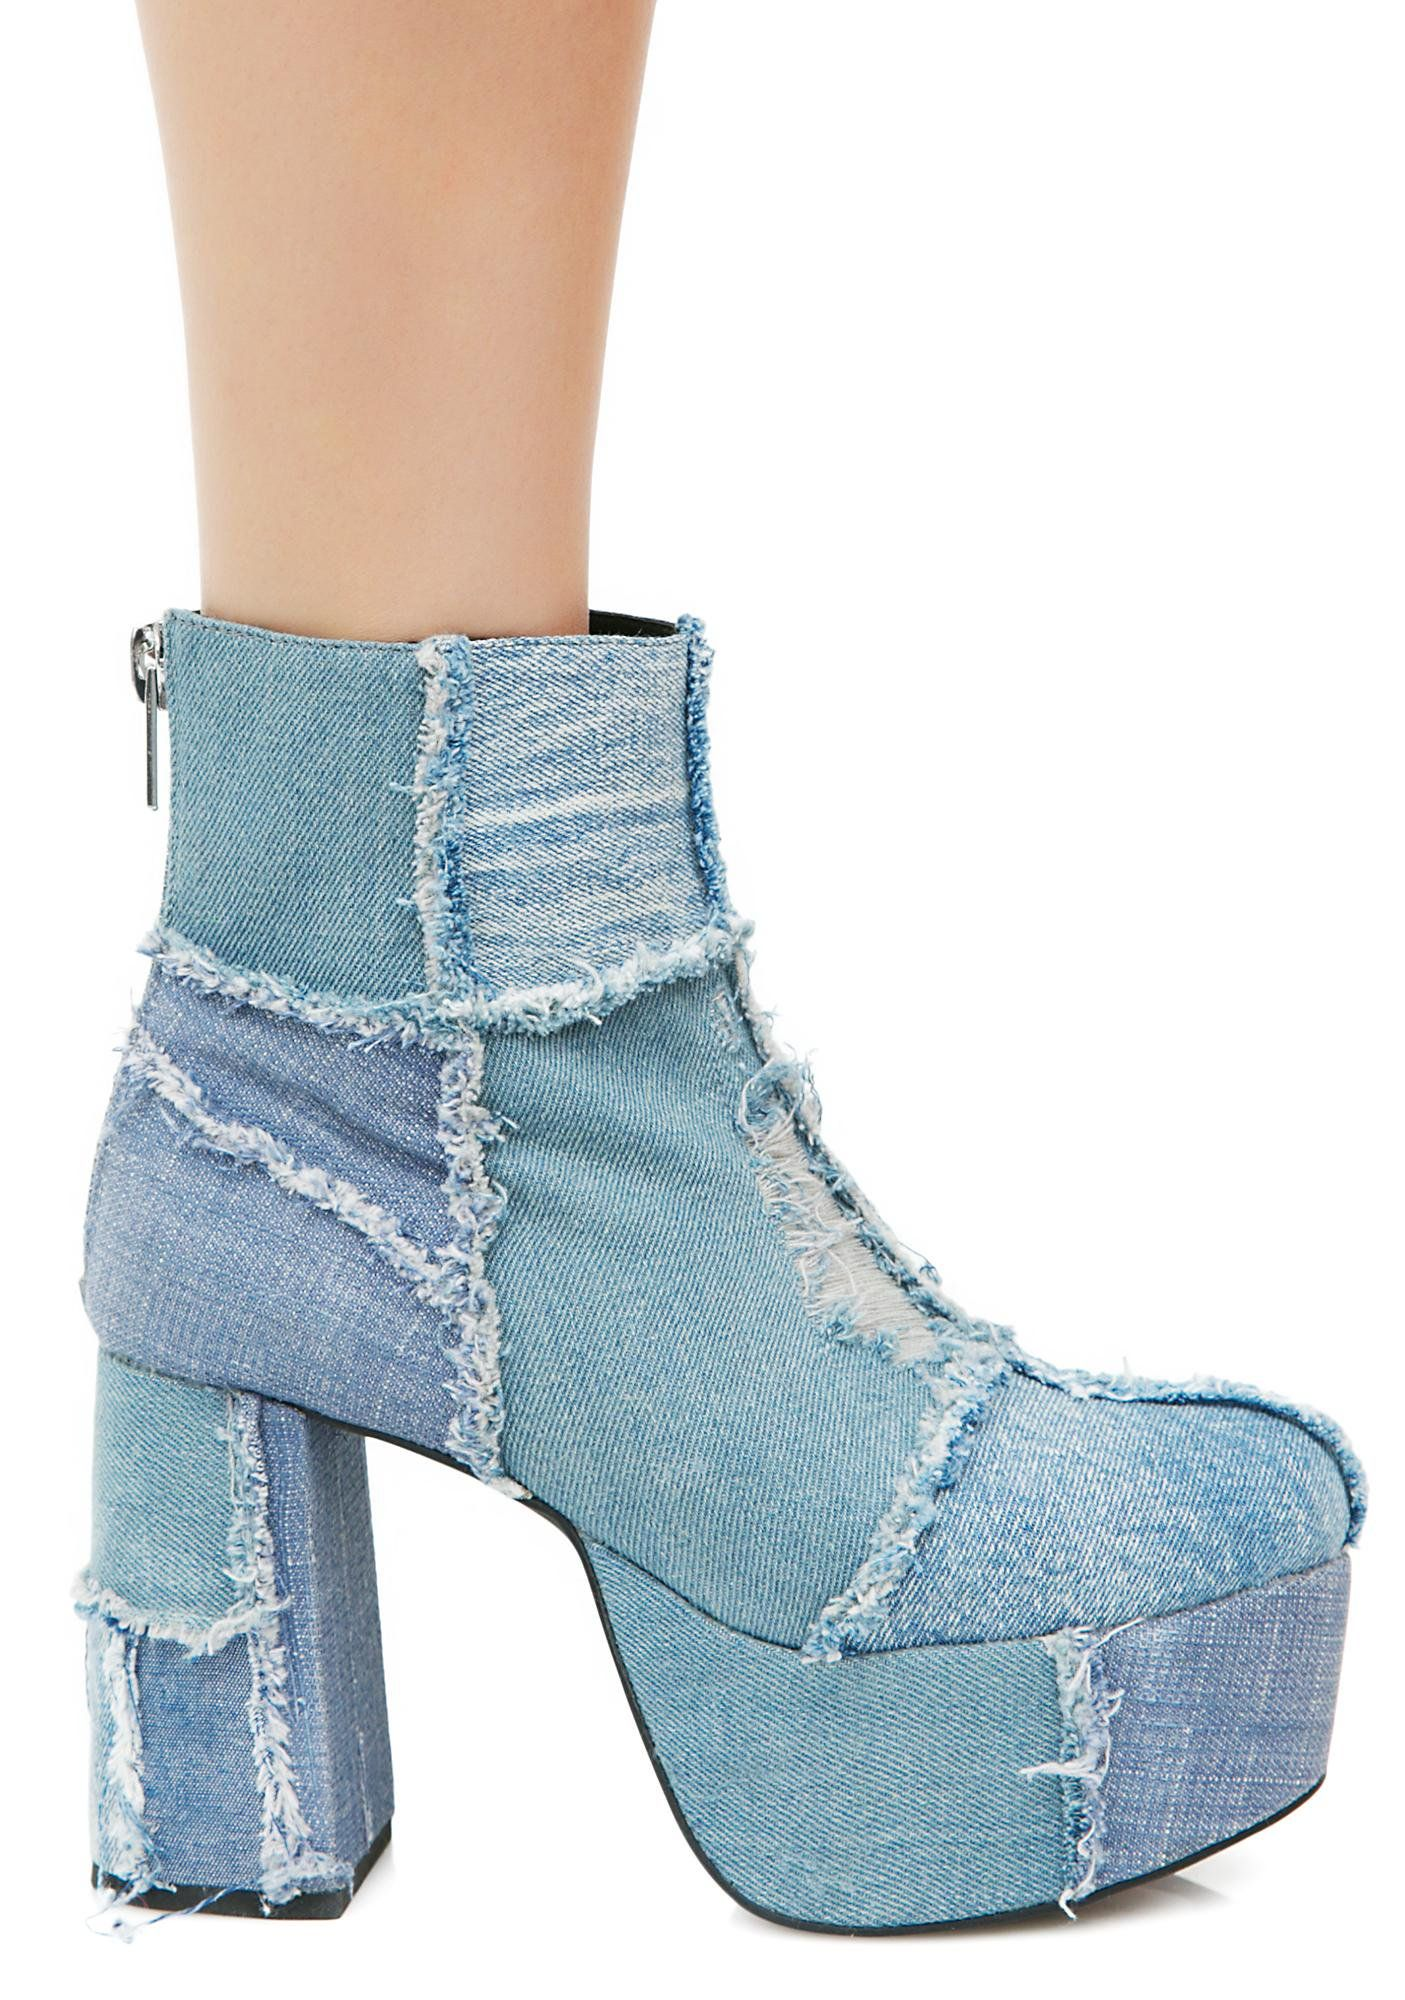 22e5810d8aa7 Current Mood Rad Doll Denim Boots life izn t always what it seams… These  lil  platform booties have a frayed patchwork design with a thick heel and  zipper ...